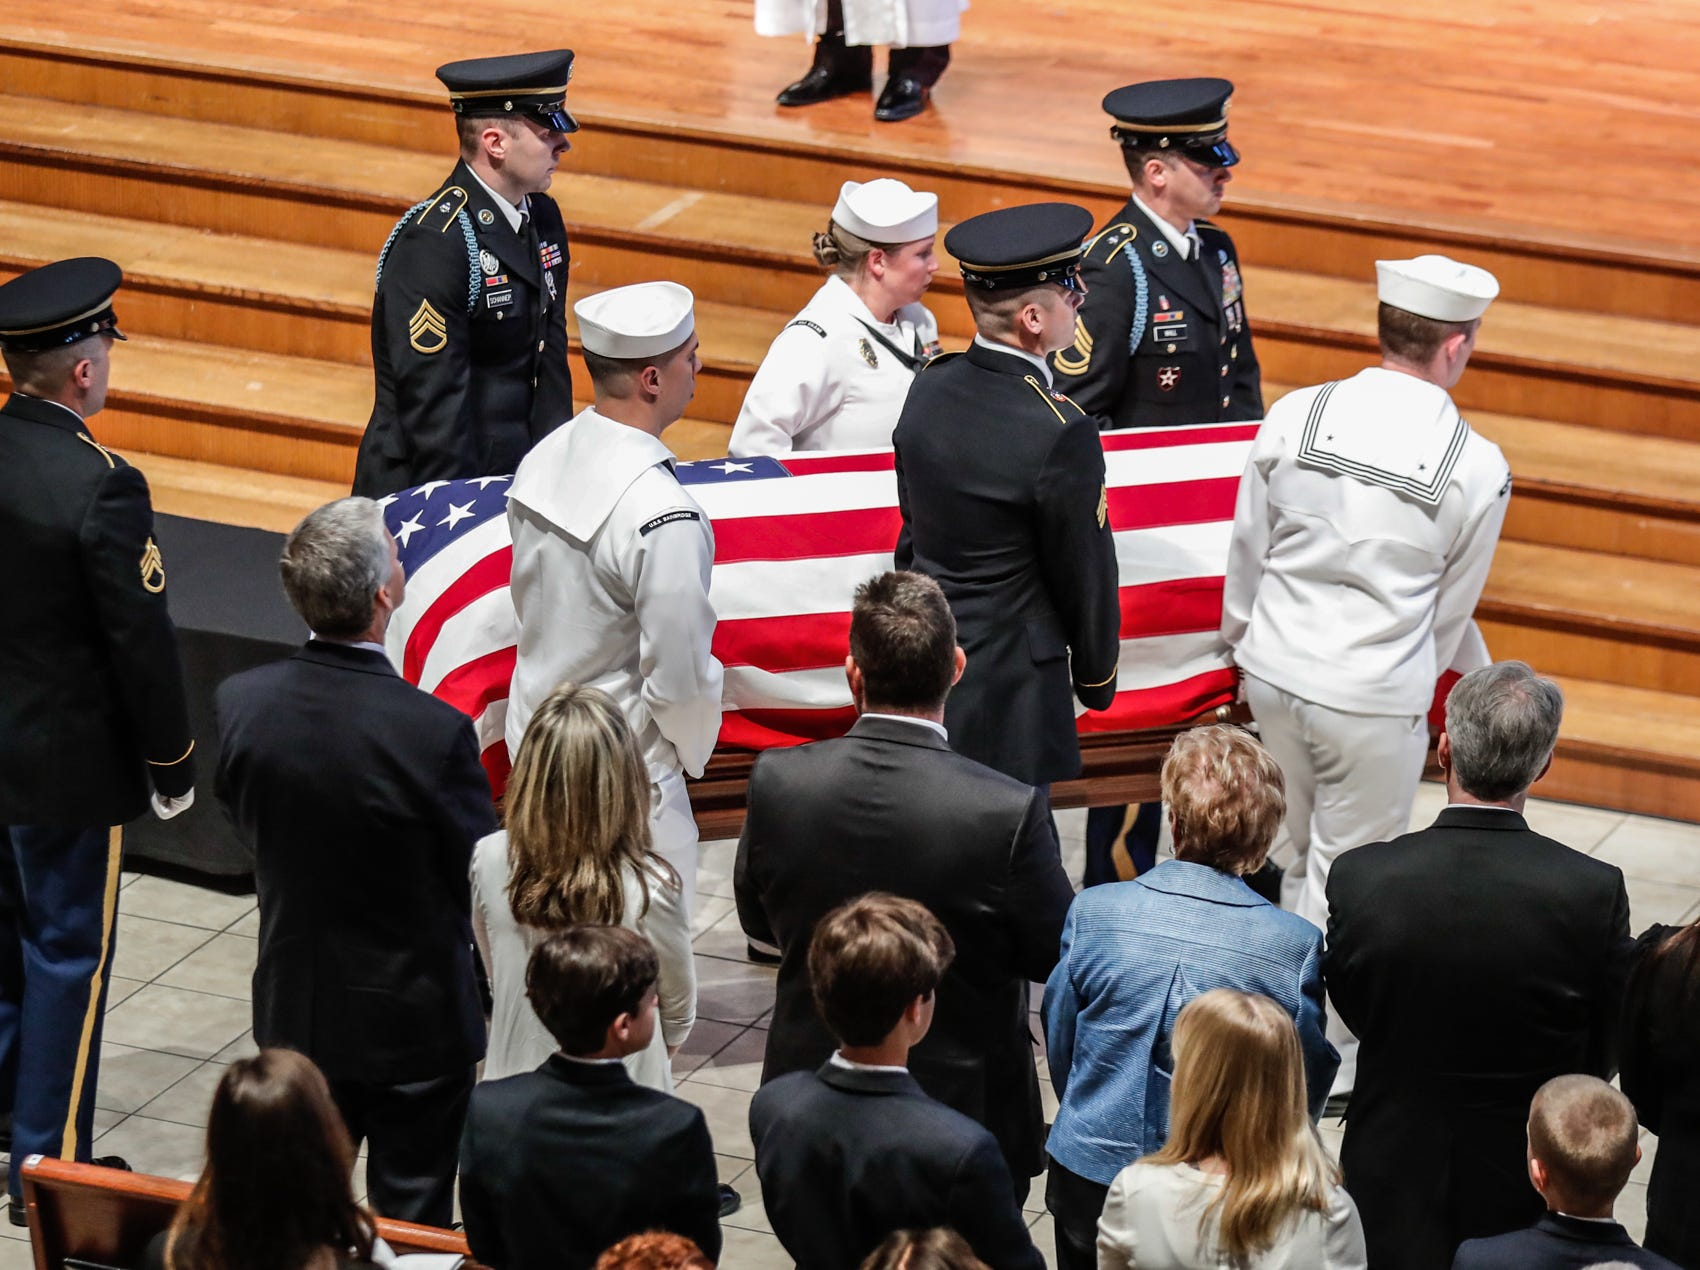 The casket of former U.S. Sen. Richard Lugar is carried into Saint Luke's United Methodist Church in Indianapolis, on Wednesday, May 15, 2019. Lugar served as mayor of Indianapolis from 1968 to 1975 and U.S. senator from 1977 to 2013. He died April 28, 2019, at the age of 87.